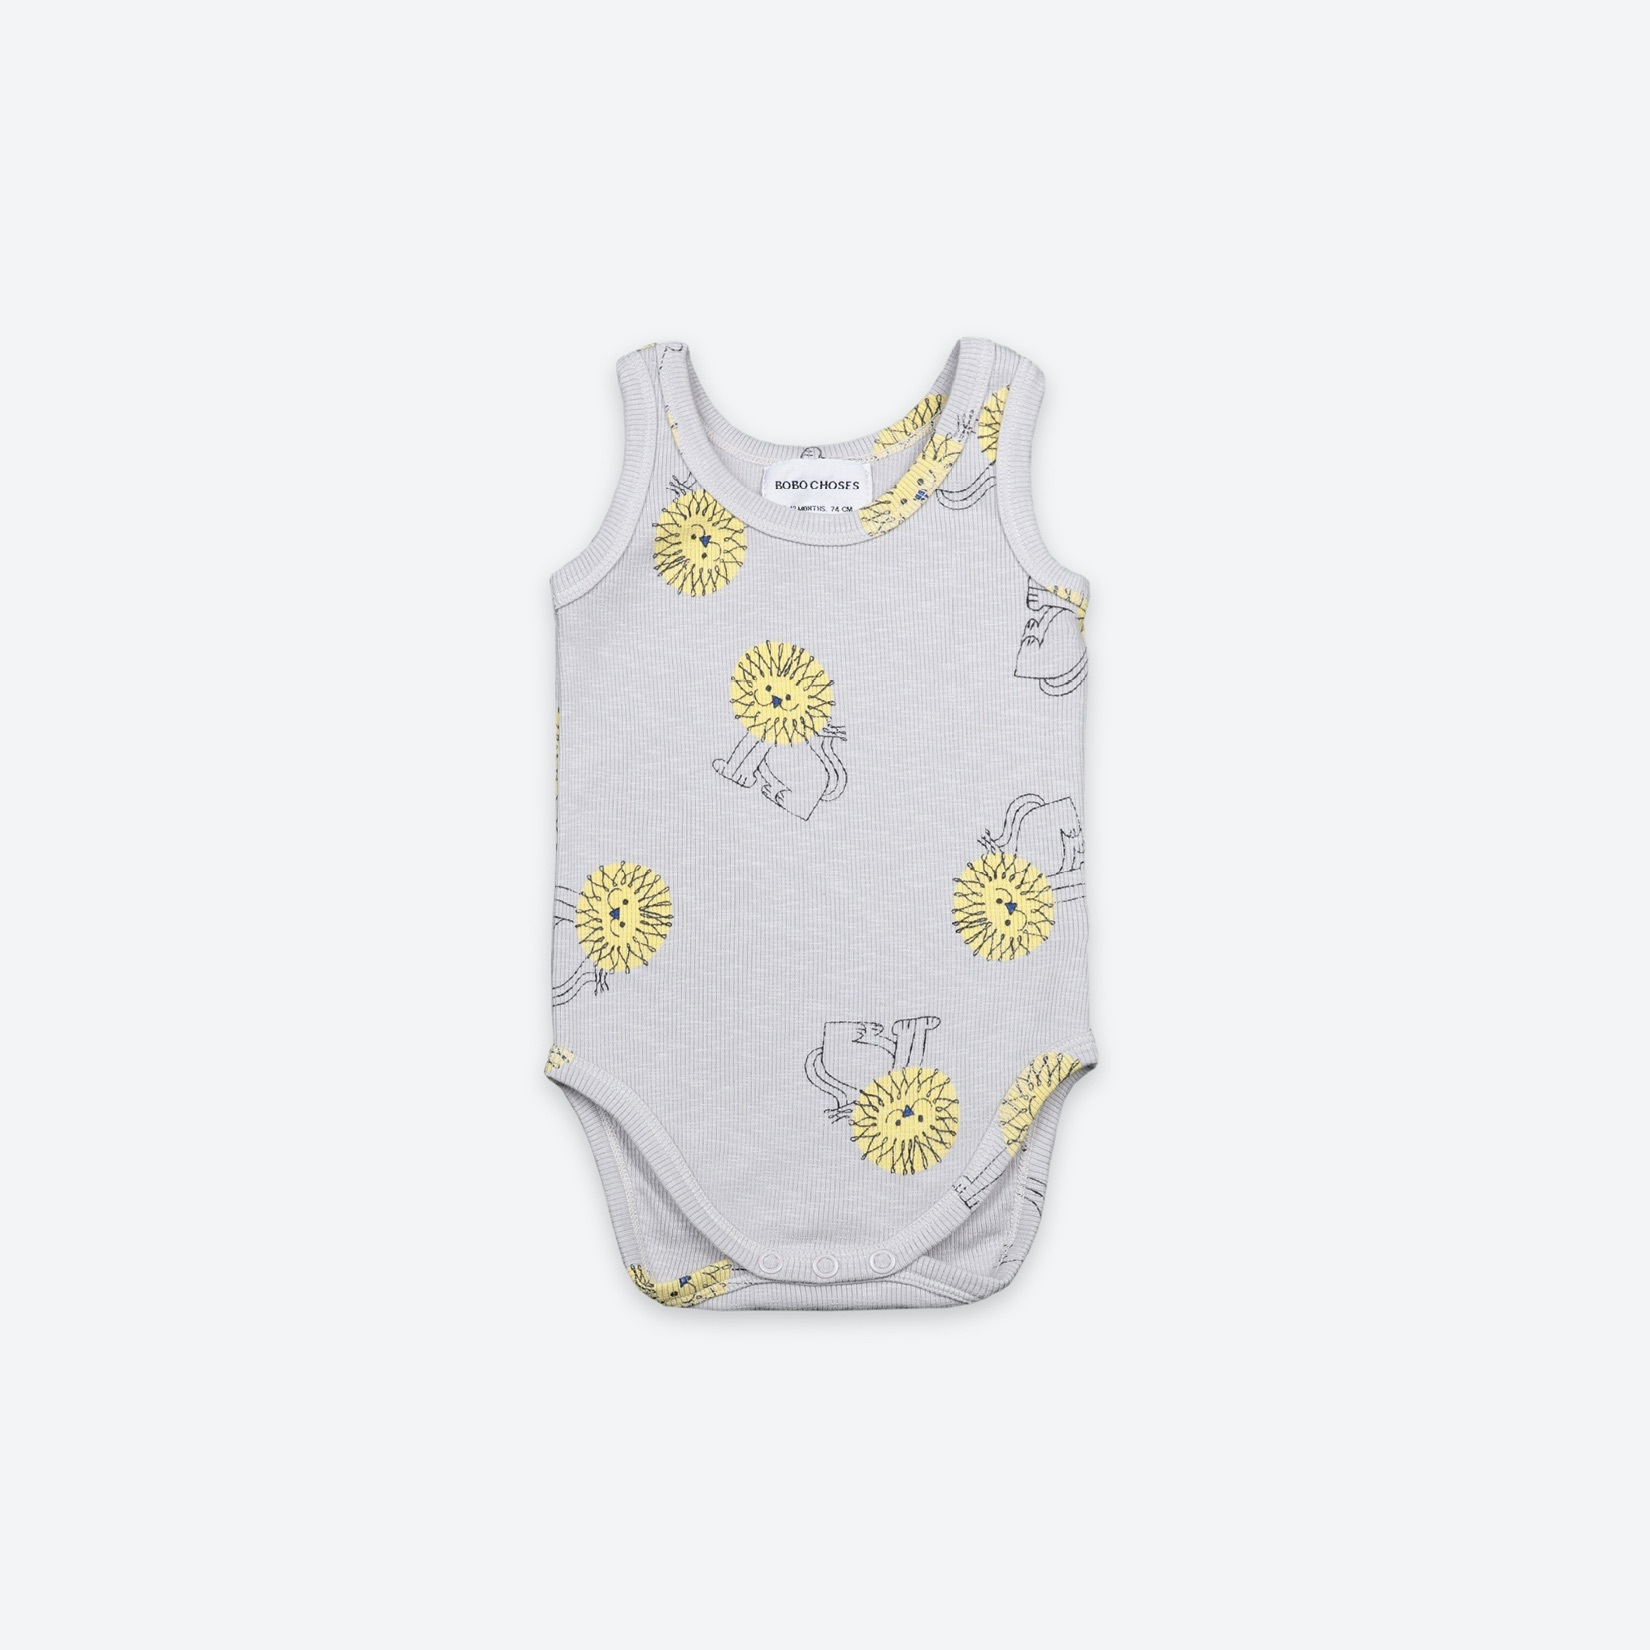 《BOBO CHOSES 2021SS》Pet A Lion sleeveless Body / 6-12M